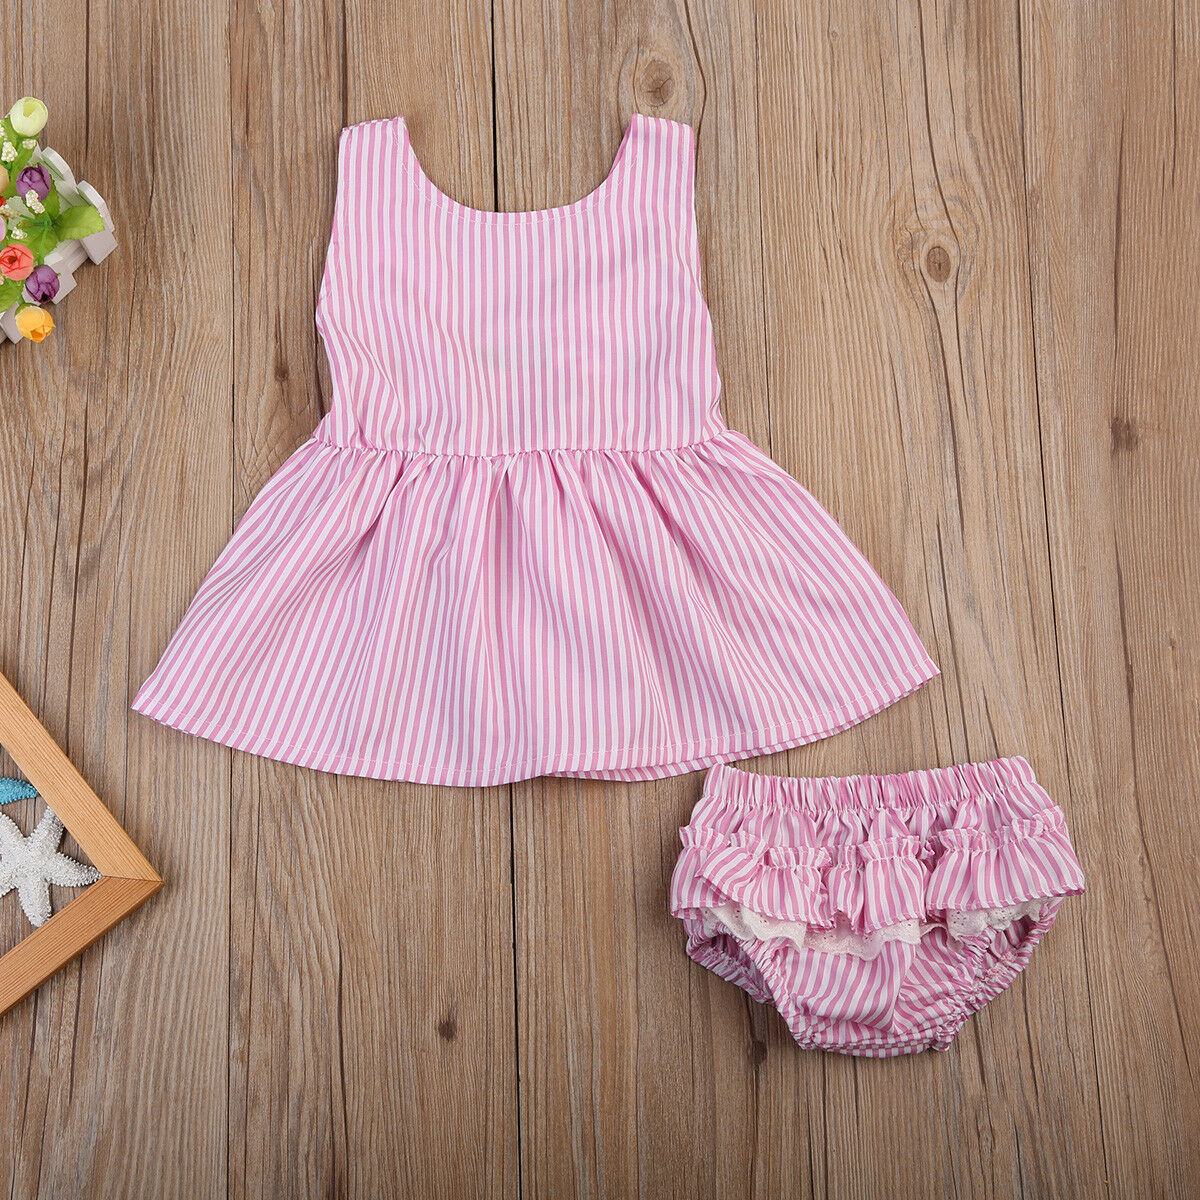 2PCS Baby Girl Striped Bow Tutu Dress Tops+Shorts Pants Summer Outfit Clothes